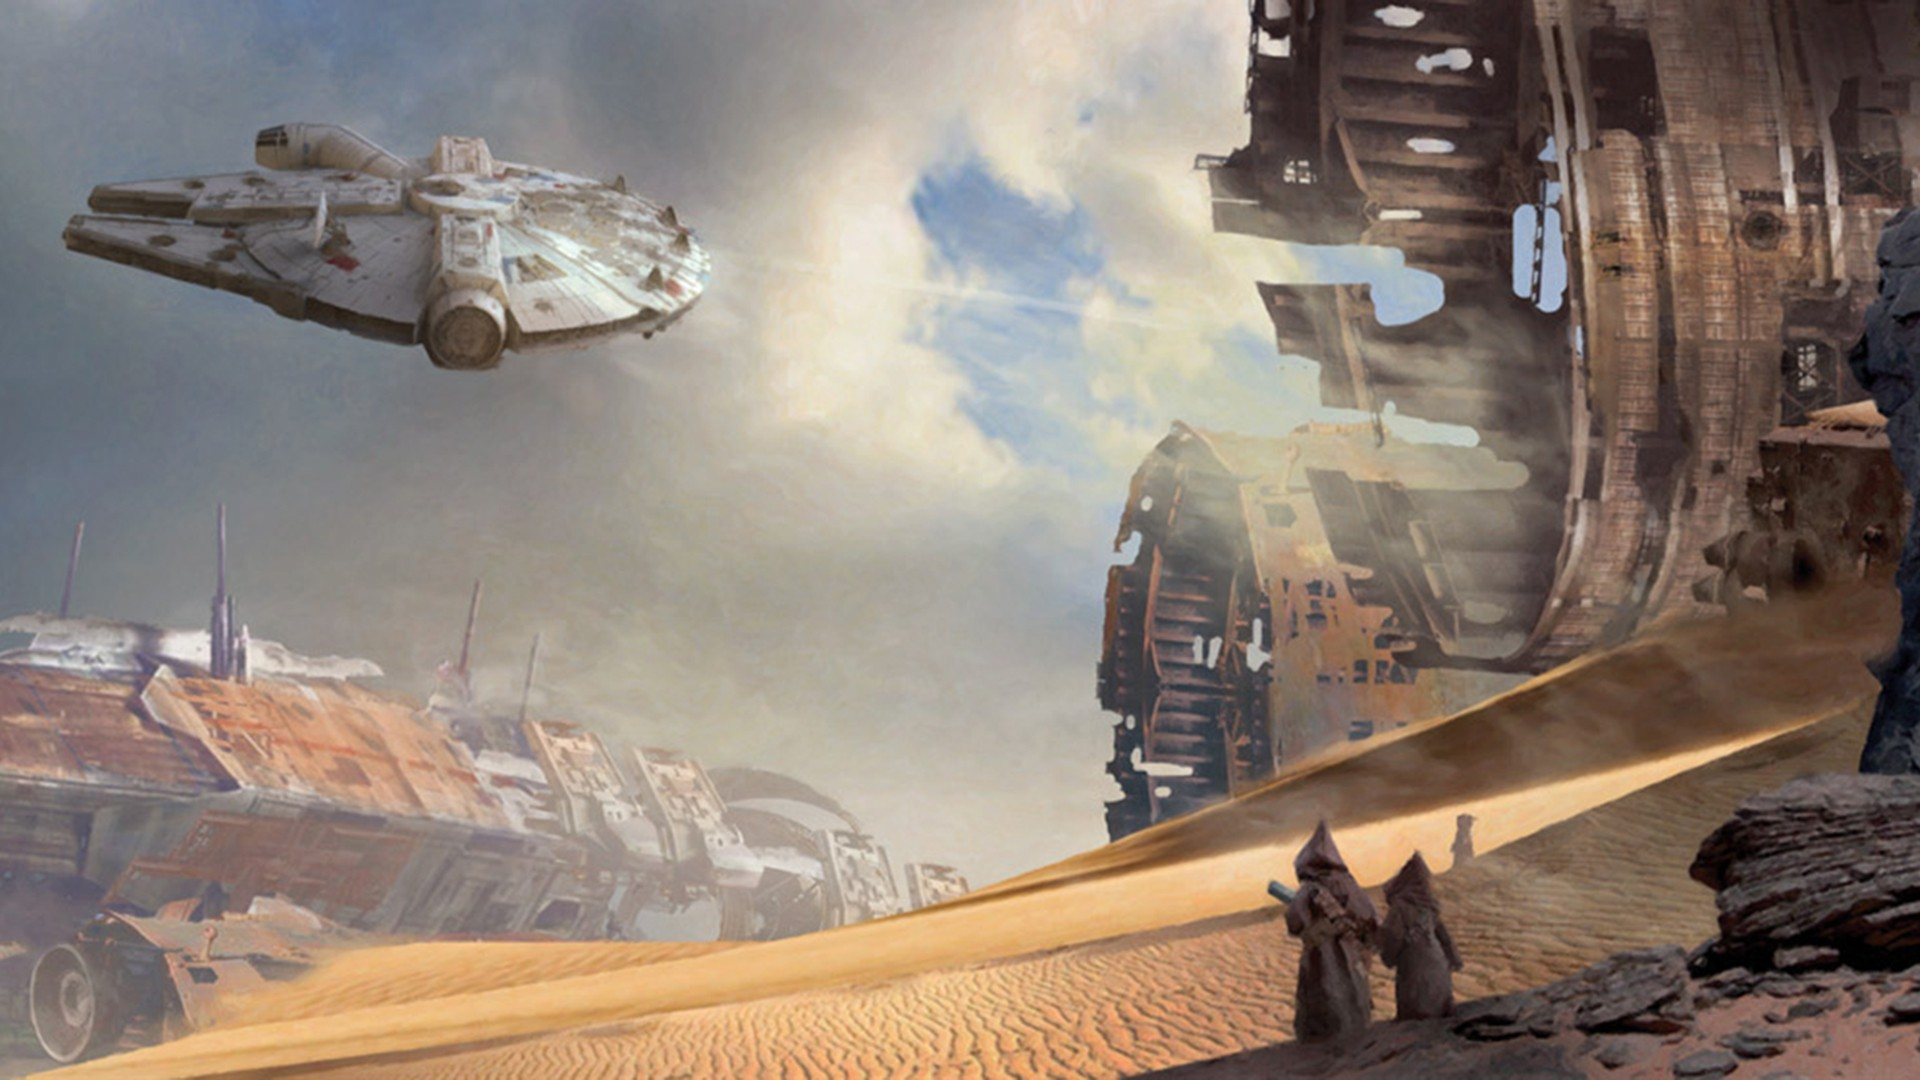 47 Sci Fi Wallpapers Download Free Stunning Full Hd Backgrounds